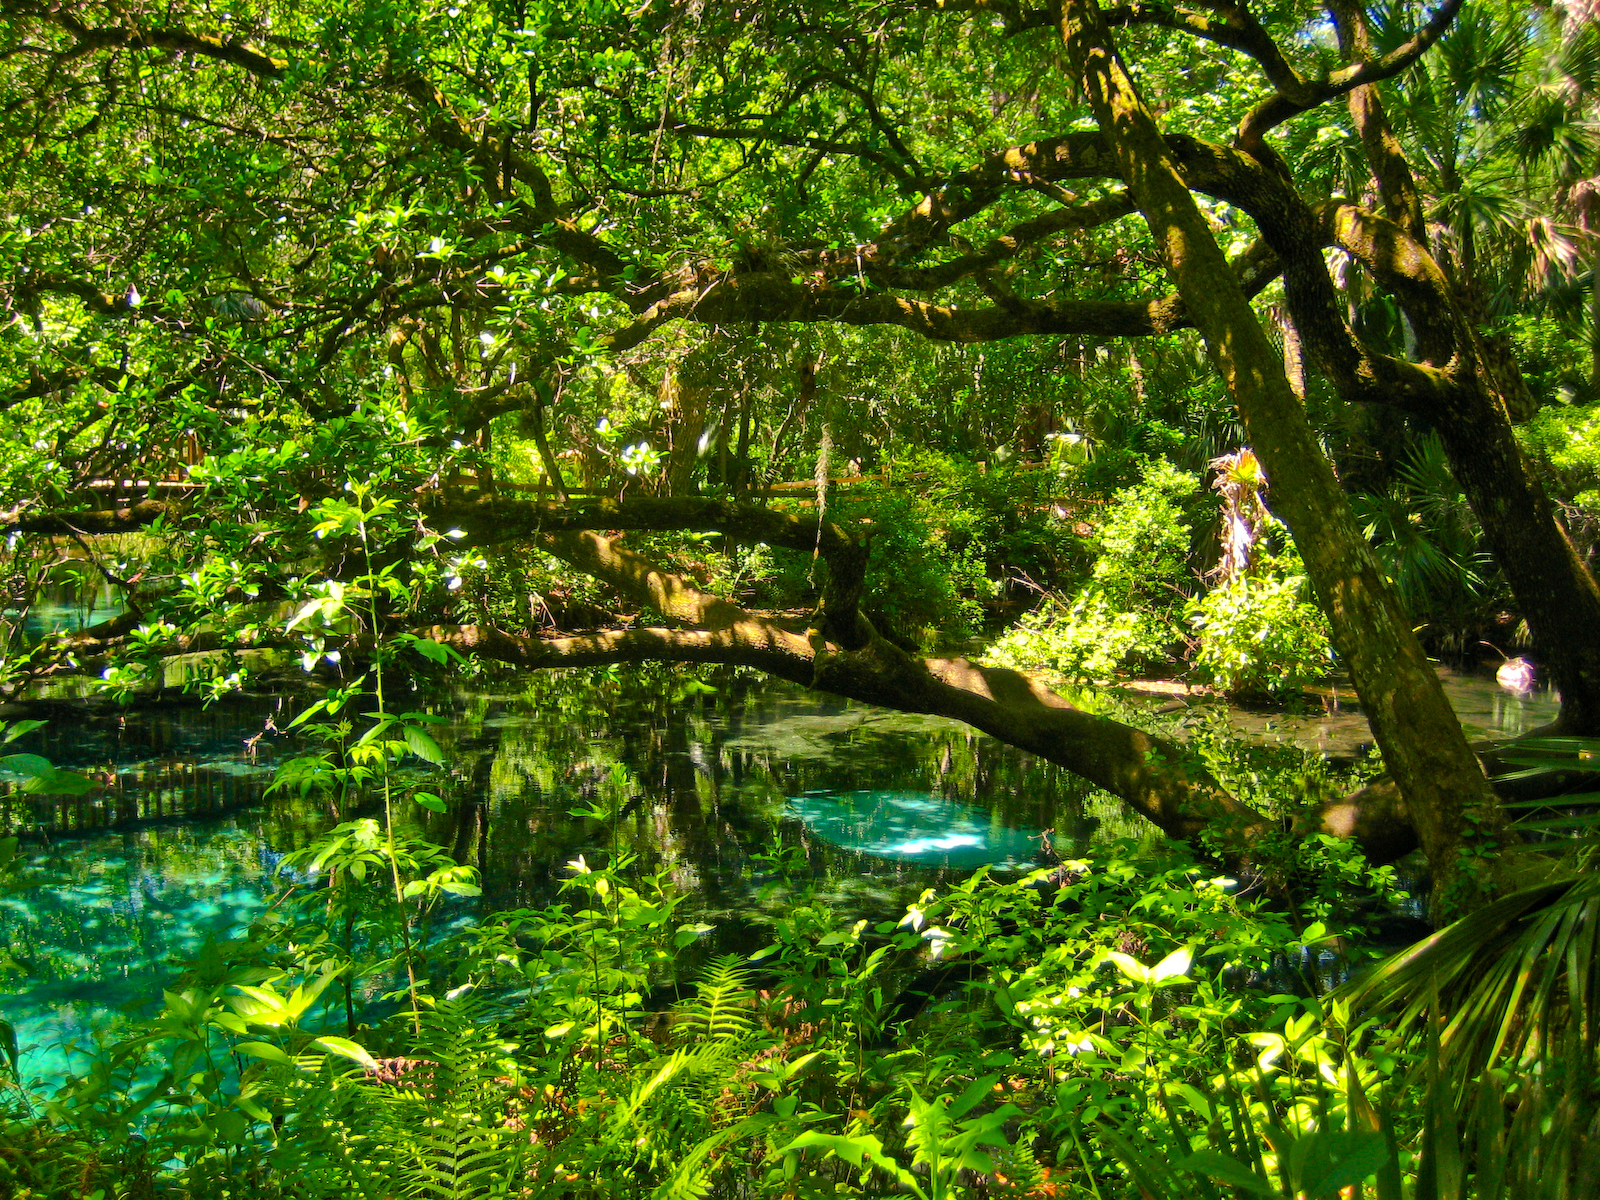 The natural beauty of Fern Hammock Springs